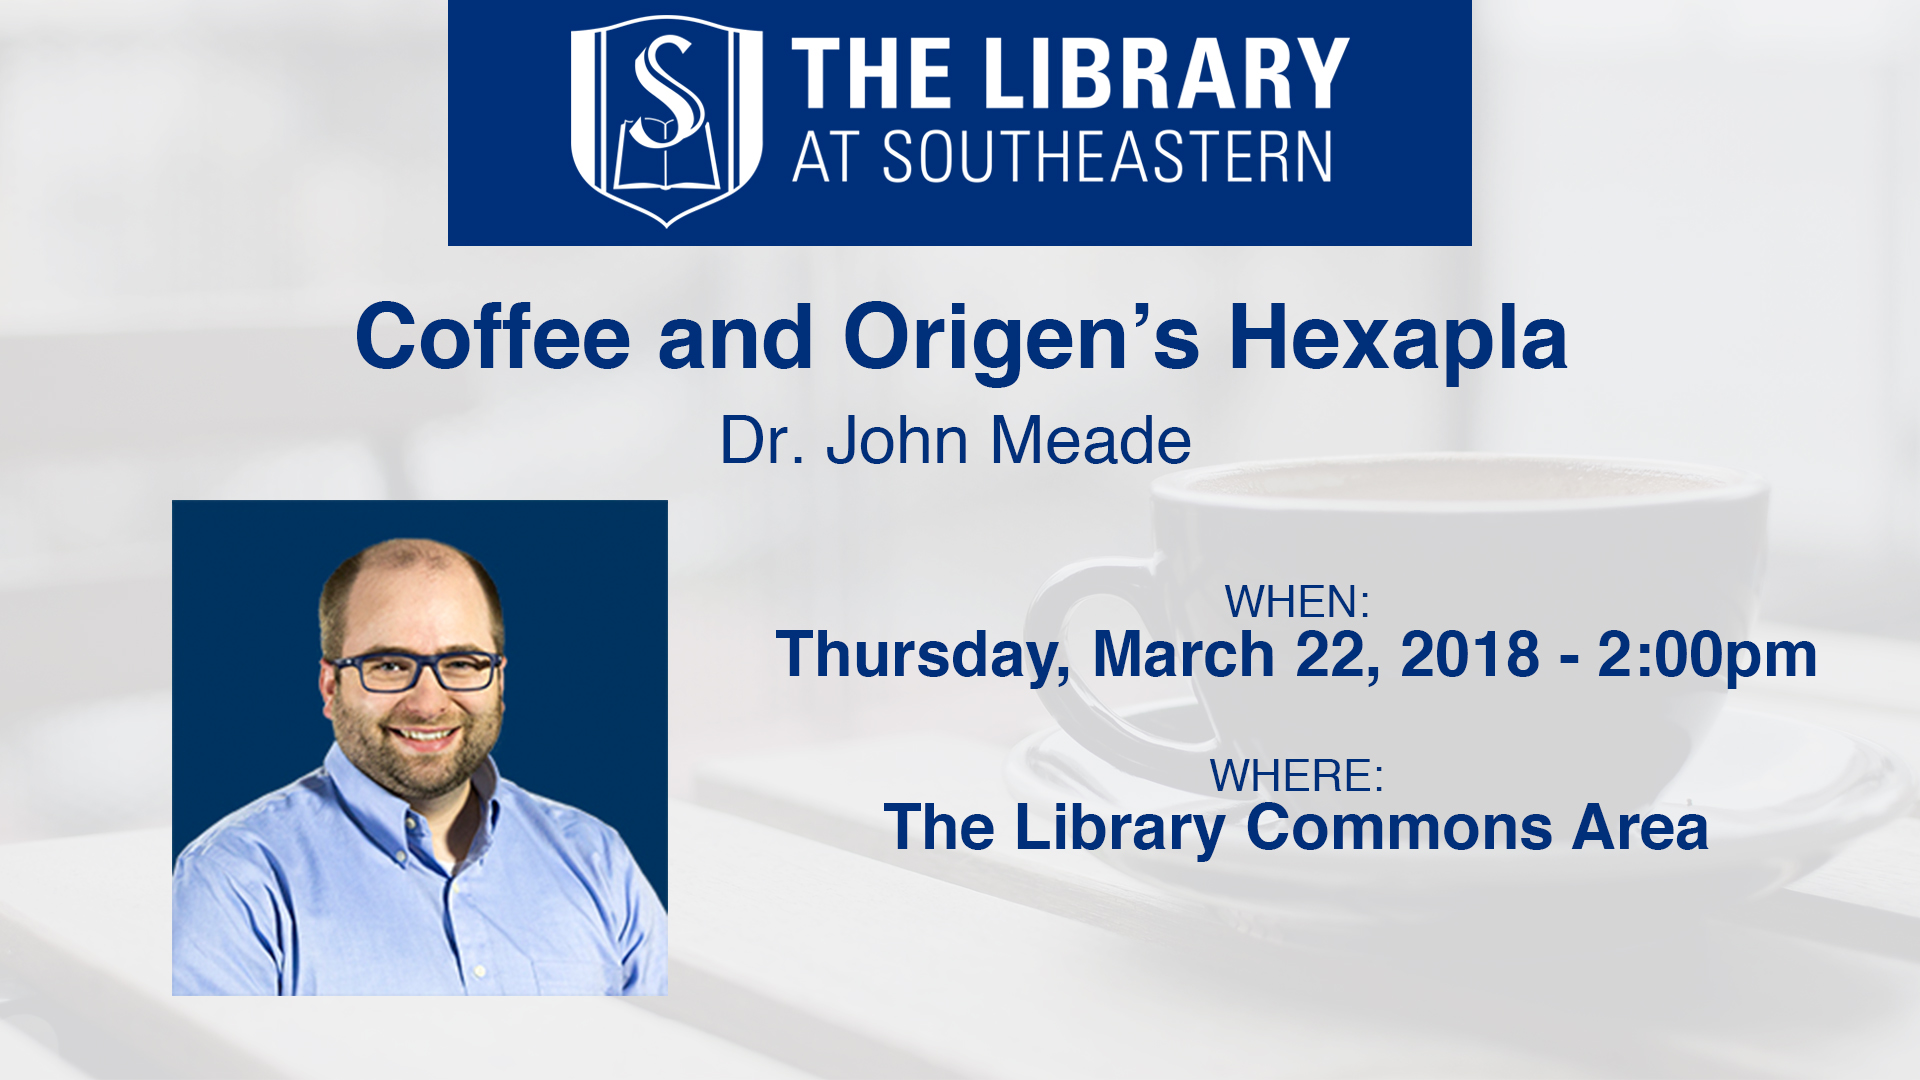 Coffee and Origen's Hexapla with Dr. John Meade